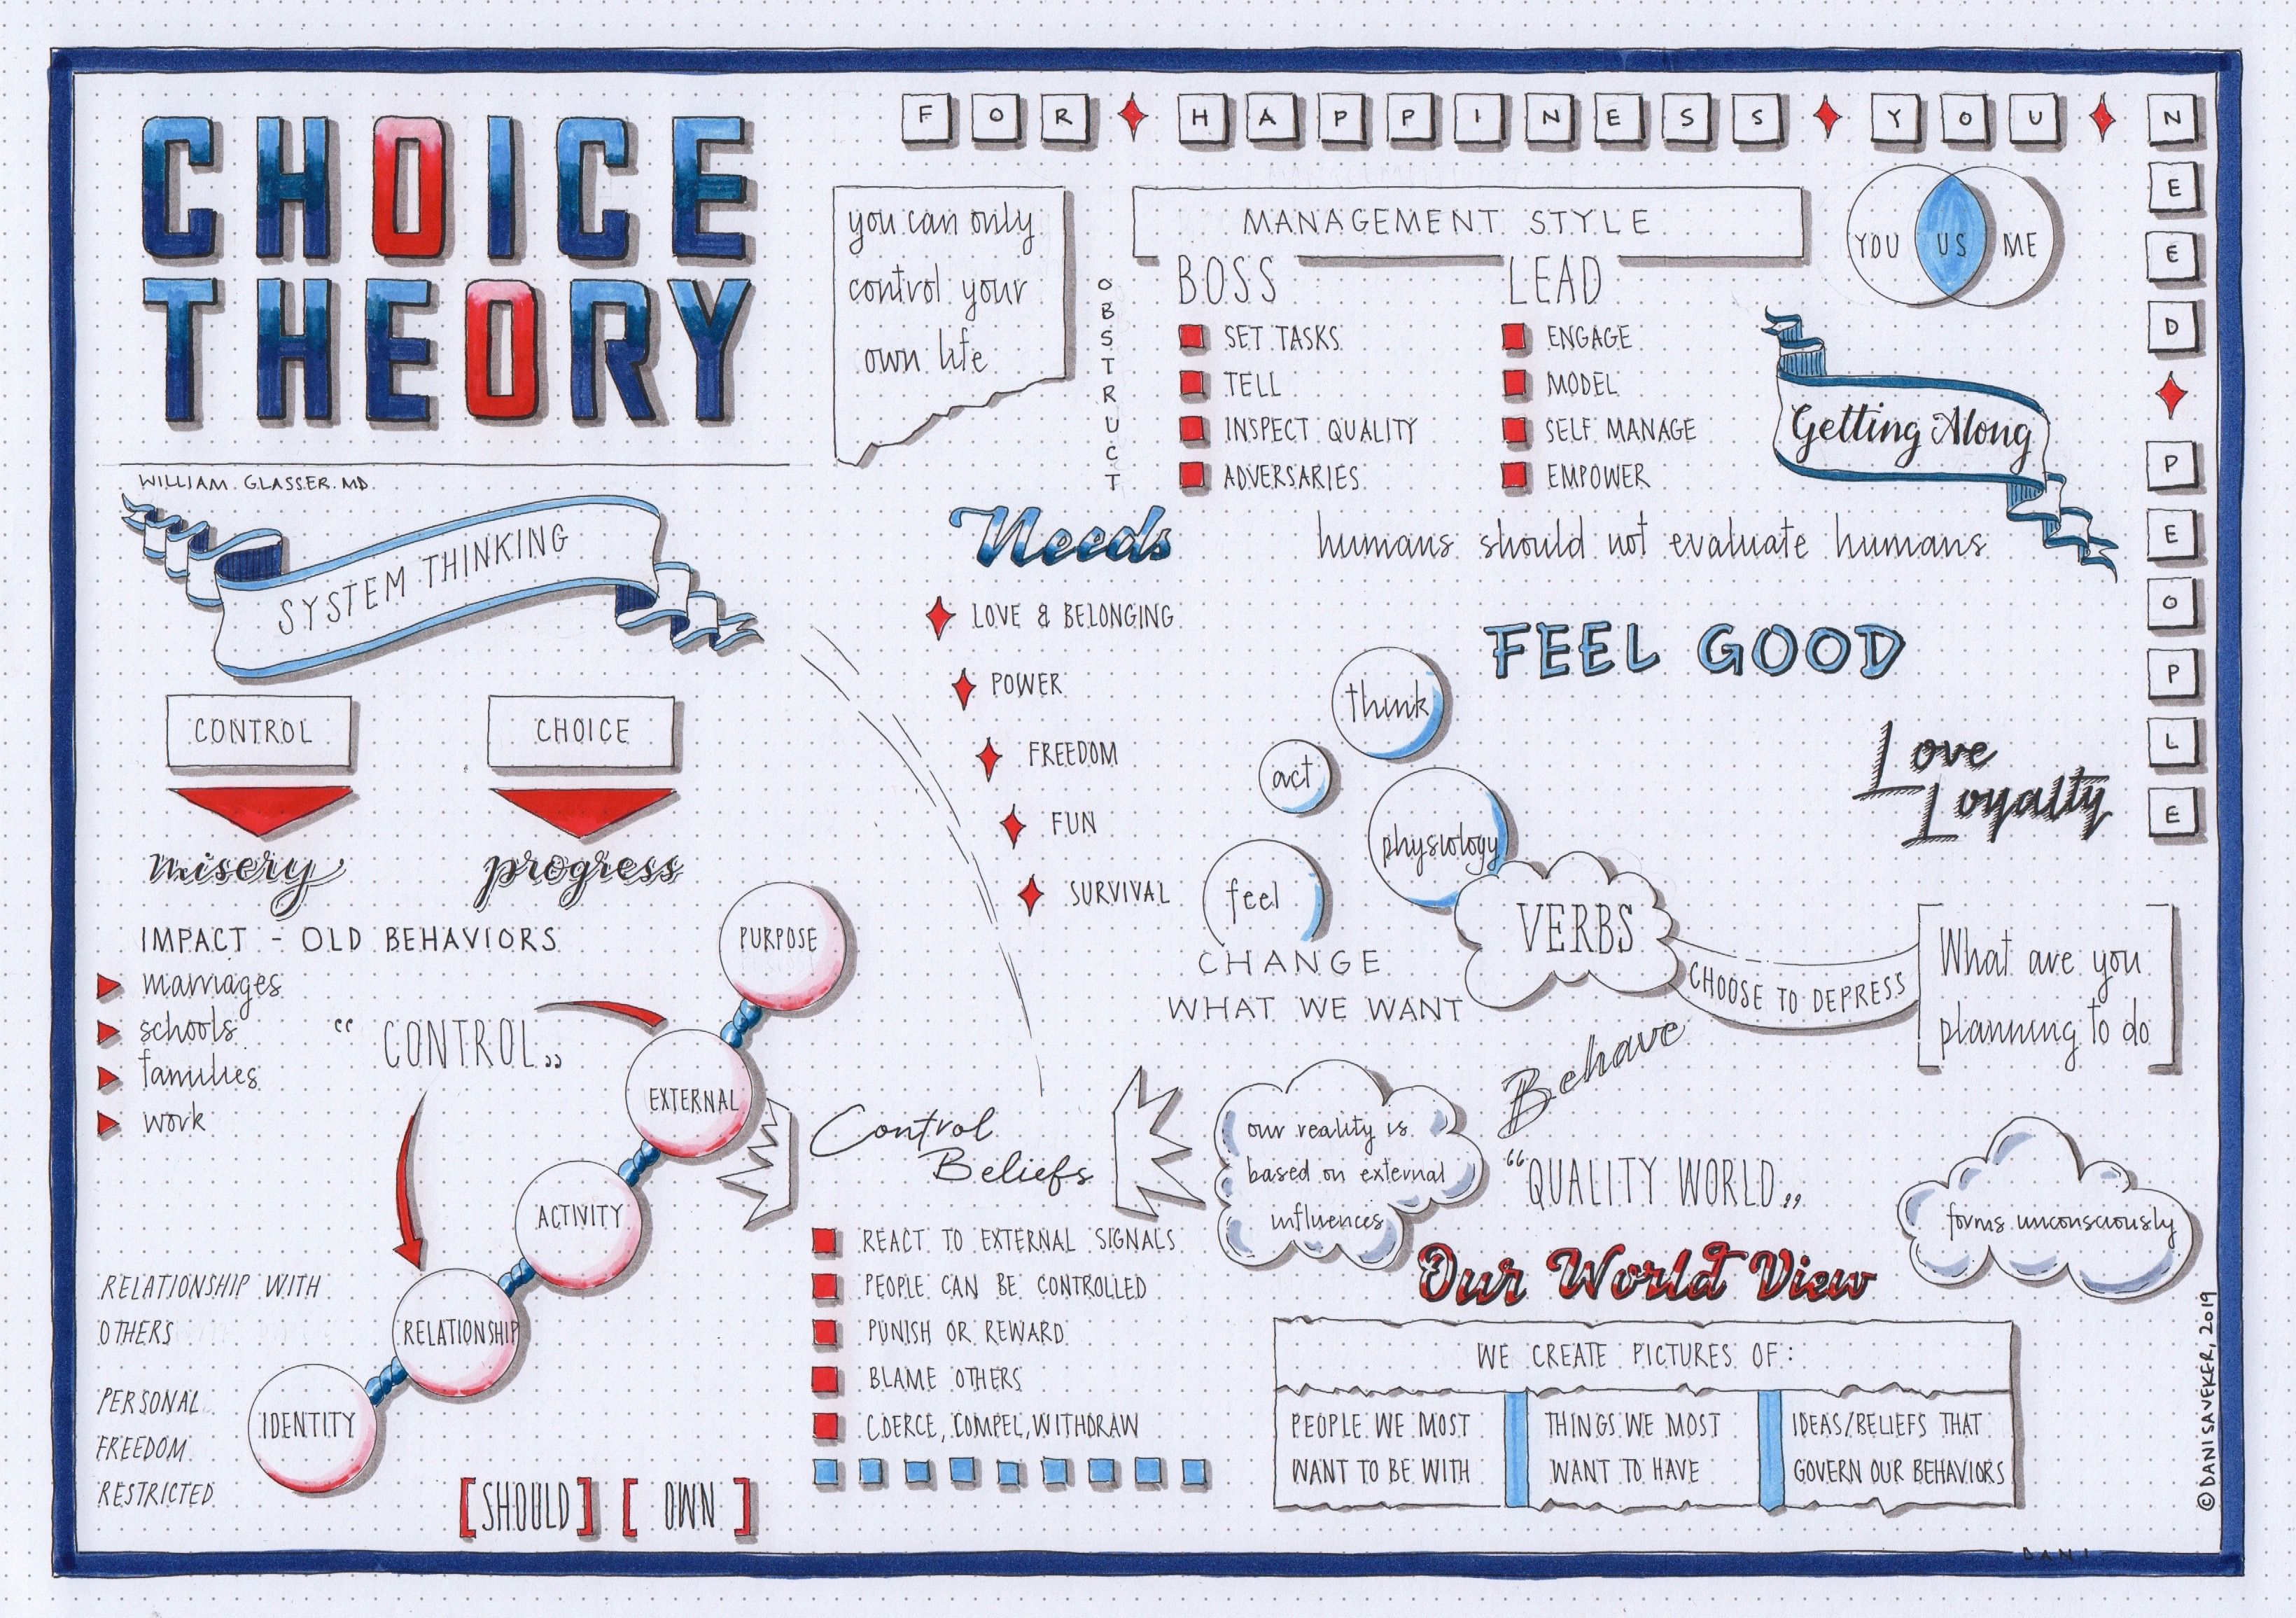 Choice theory william glasser visual synopsis by dani